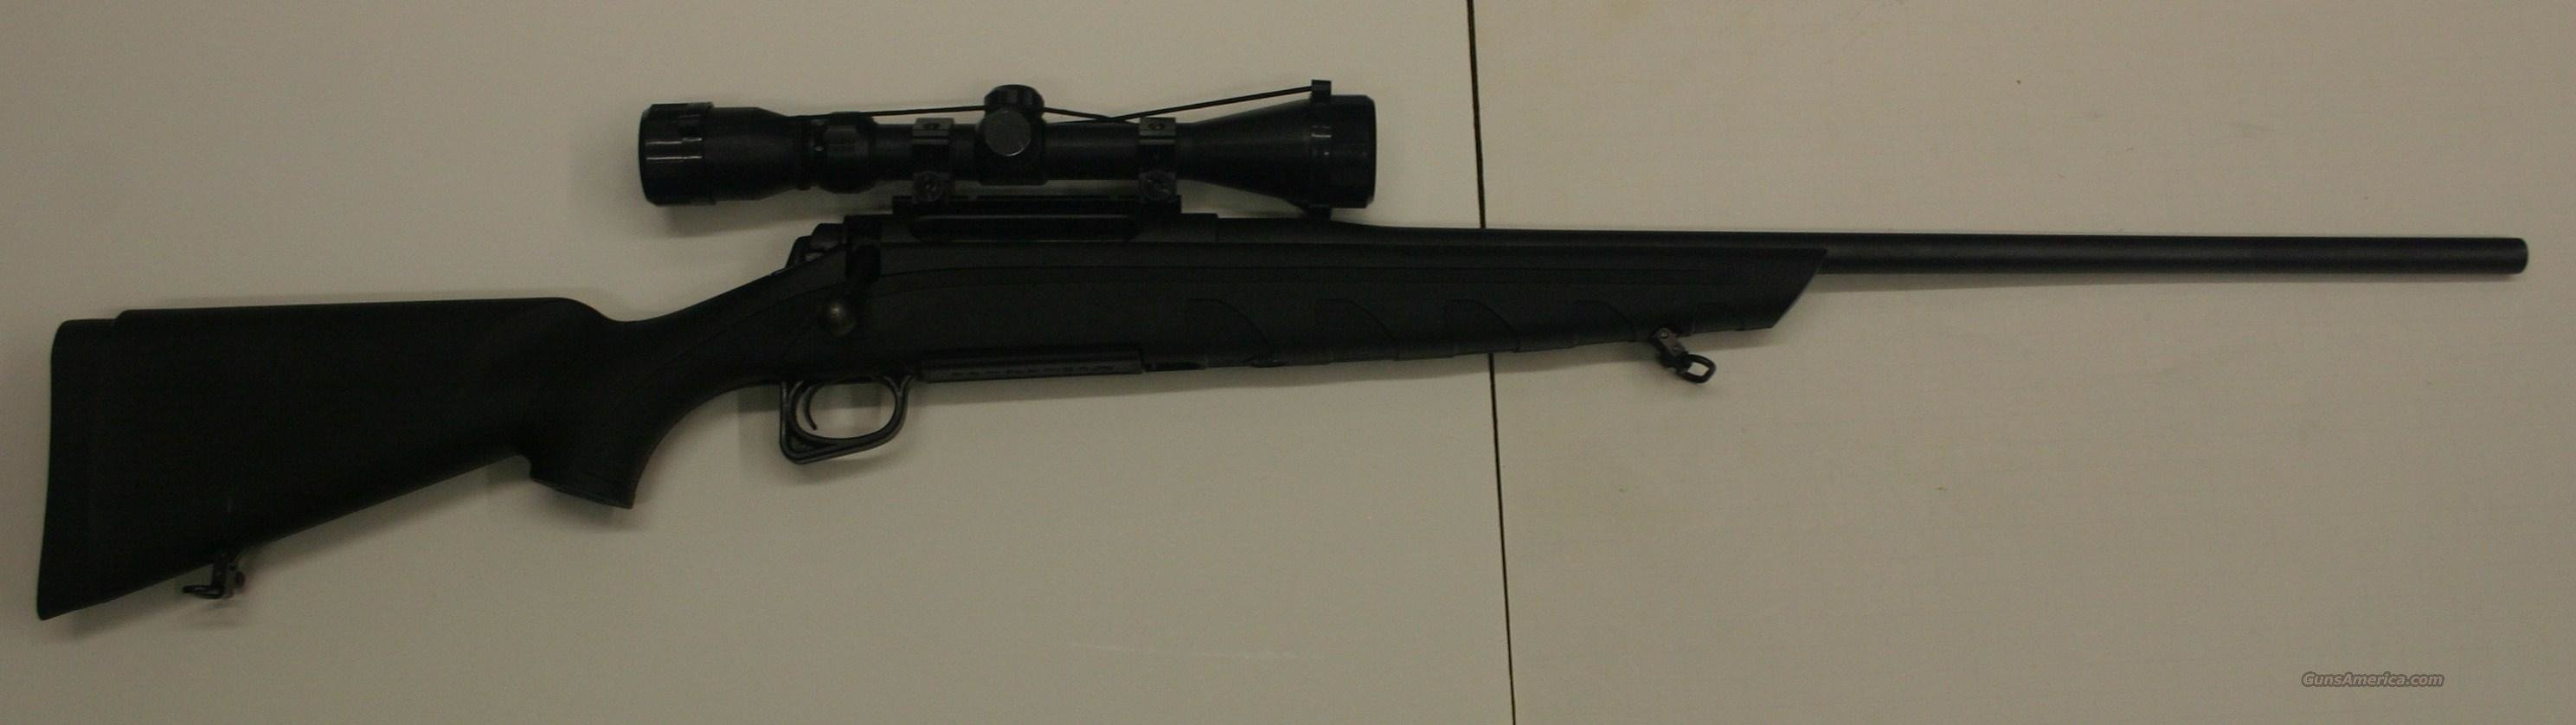 Remington 770 .7mm Mag.  Like New  Guns > Rifles > Remington Rifles - Modern > Bolt Action Non-Model 700 > Sporting